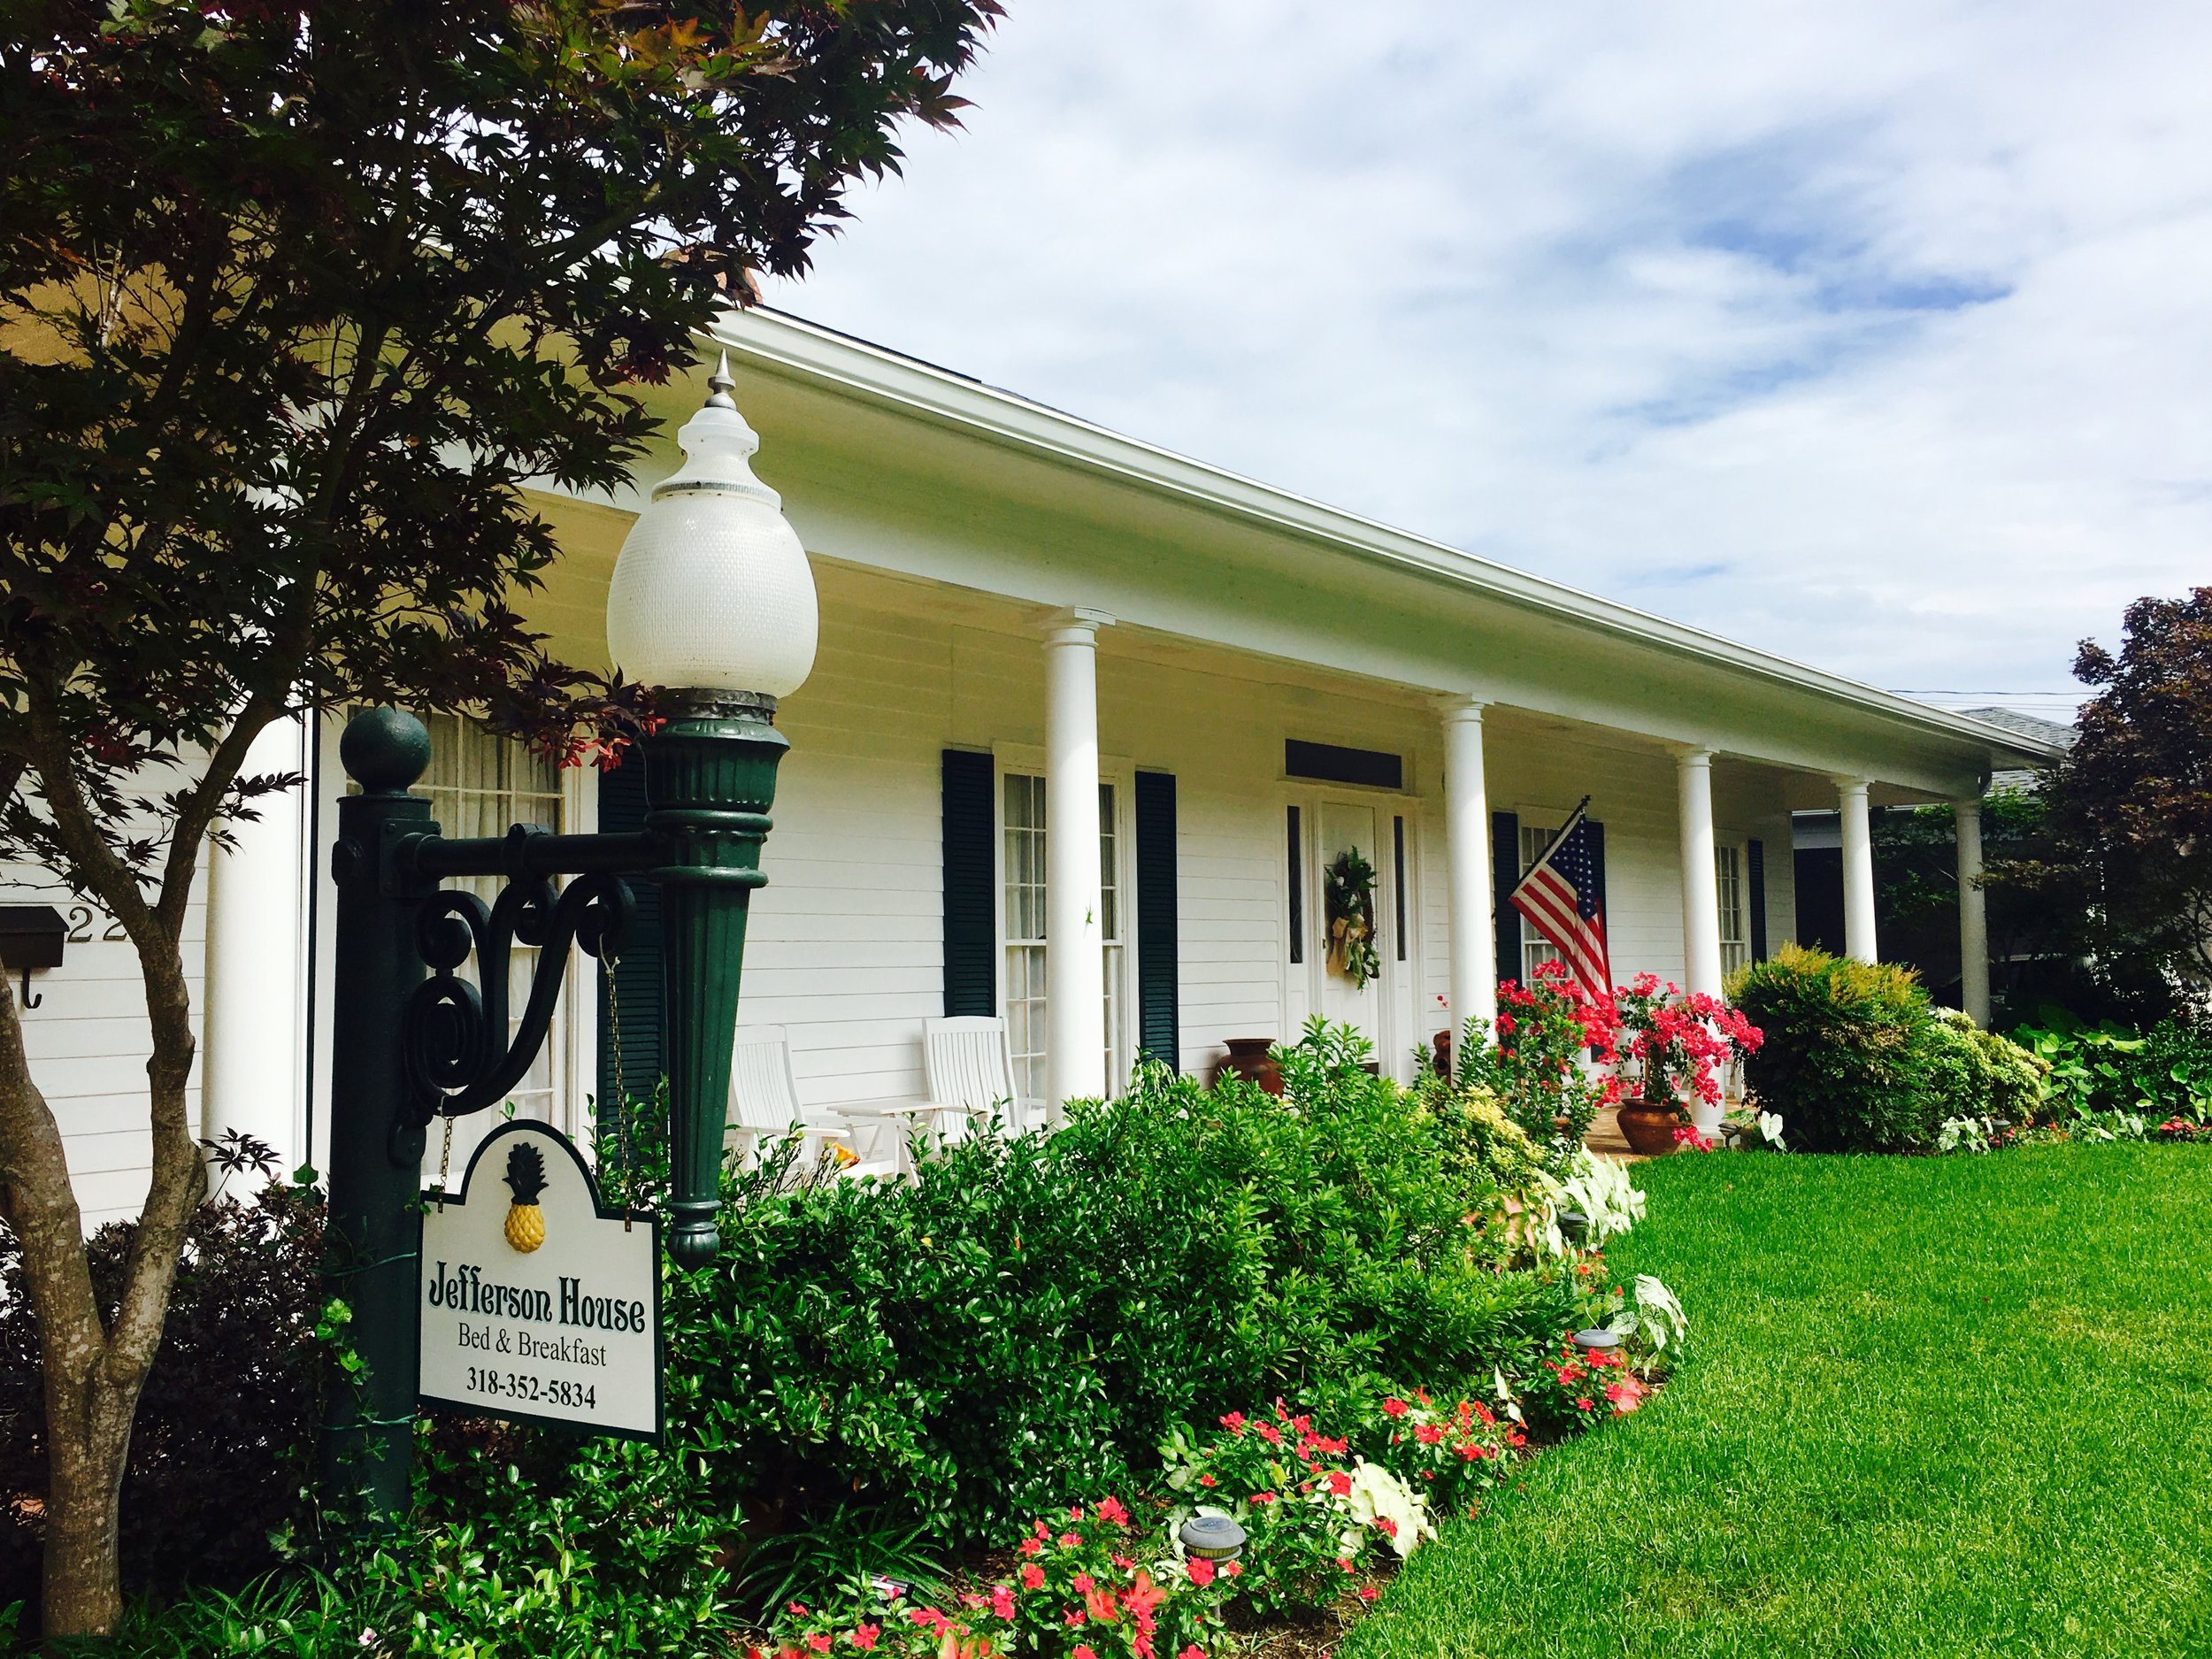 Jefferson House Bed and Breakfast